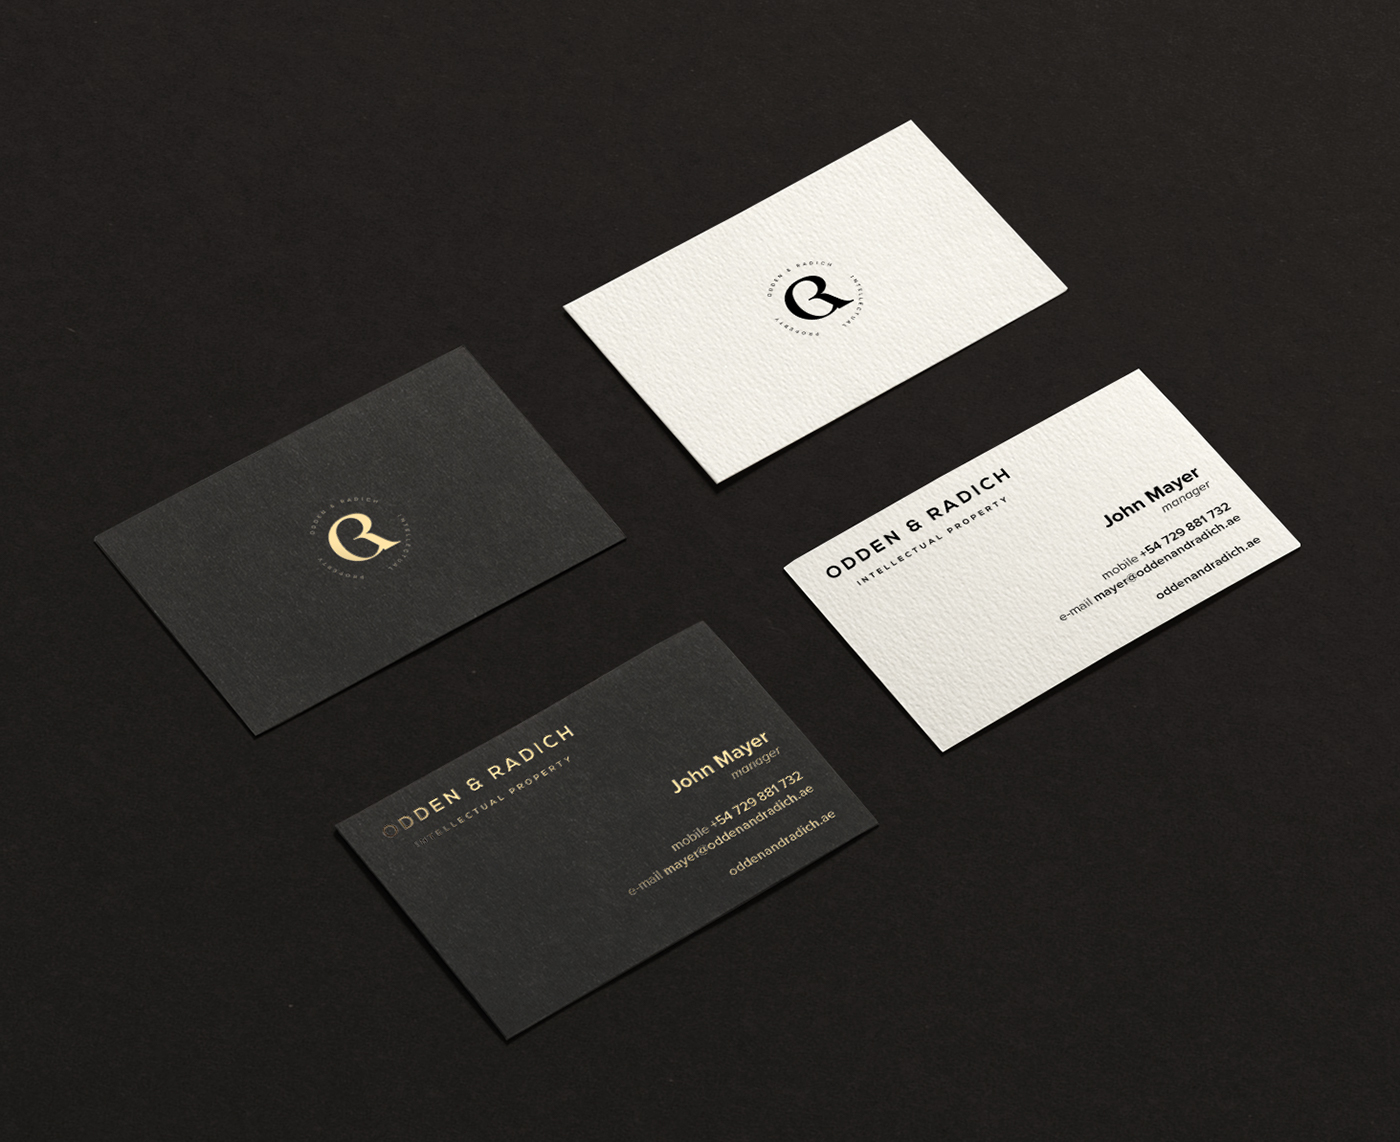 Odden & Radich business cards